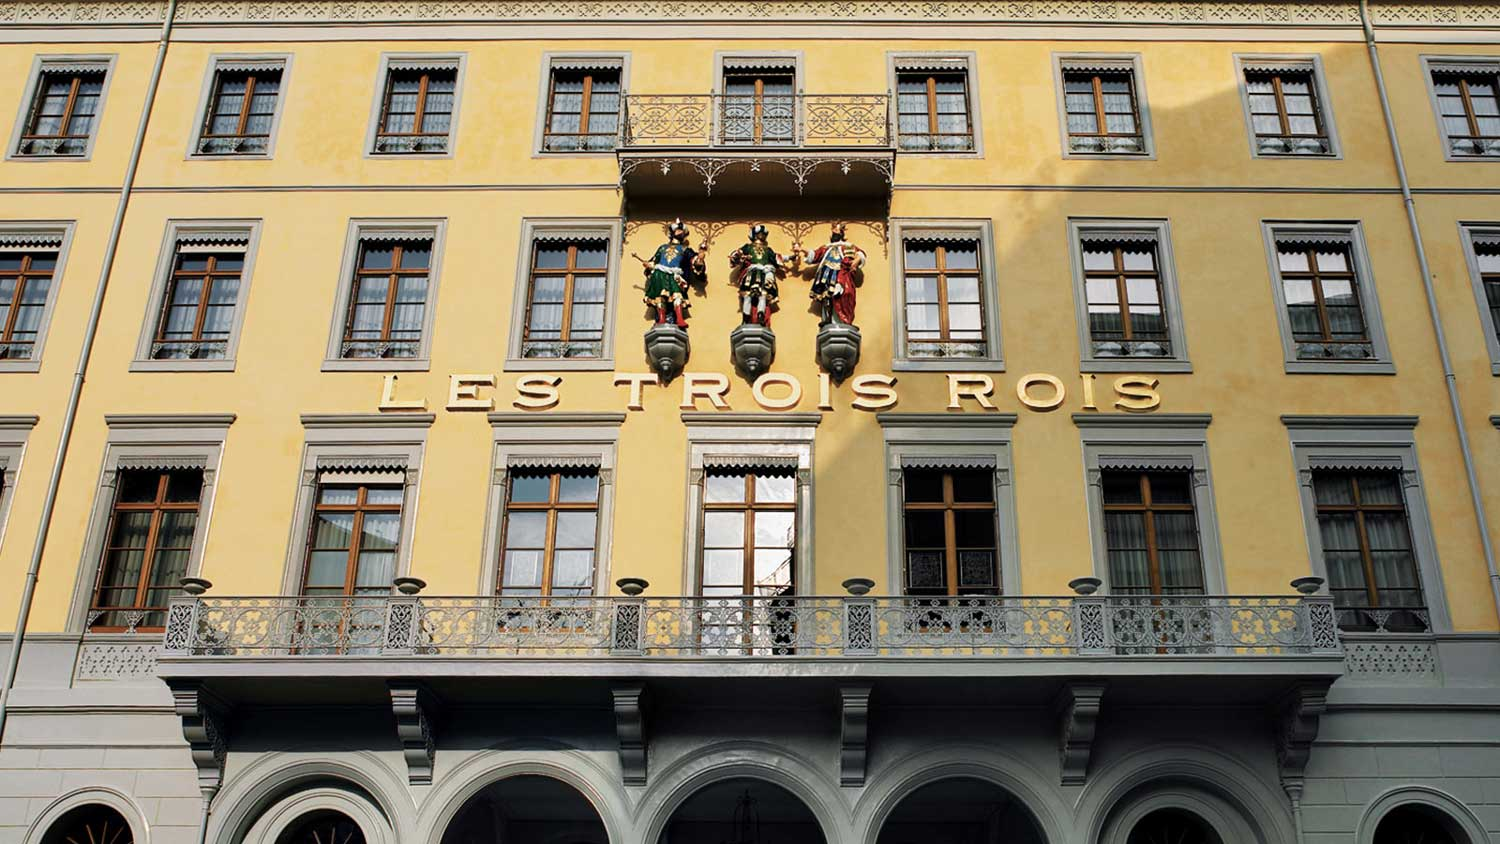 Grand Hotel Les Trois Rois, Basel's only 5-star hotel